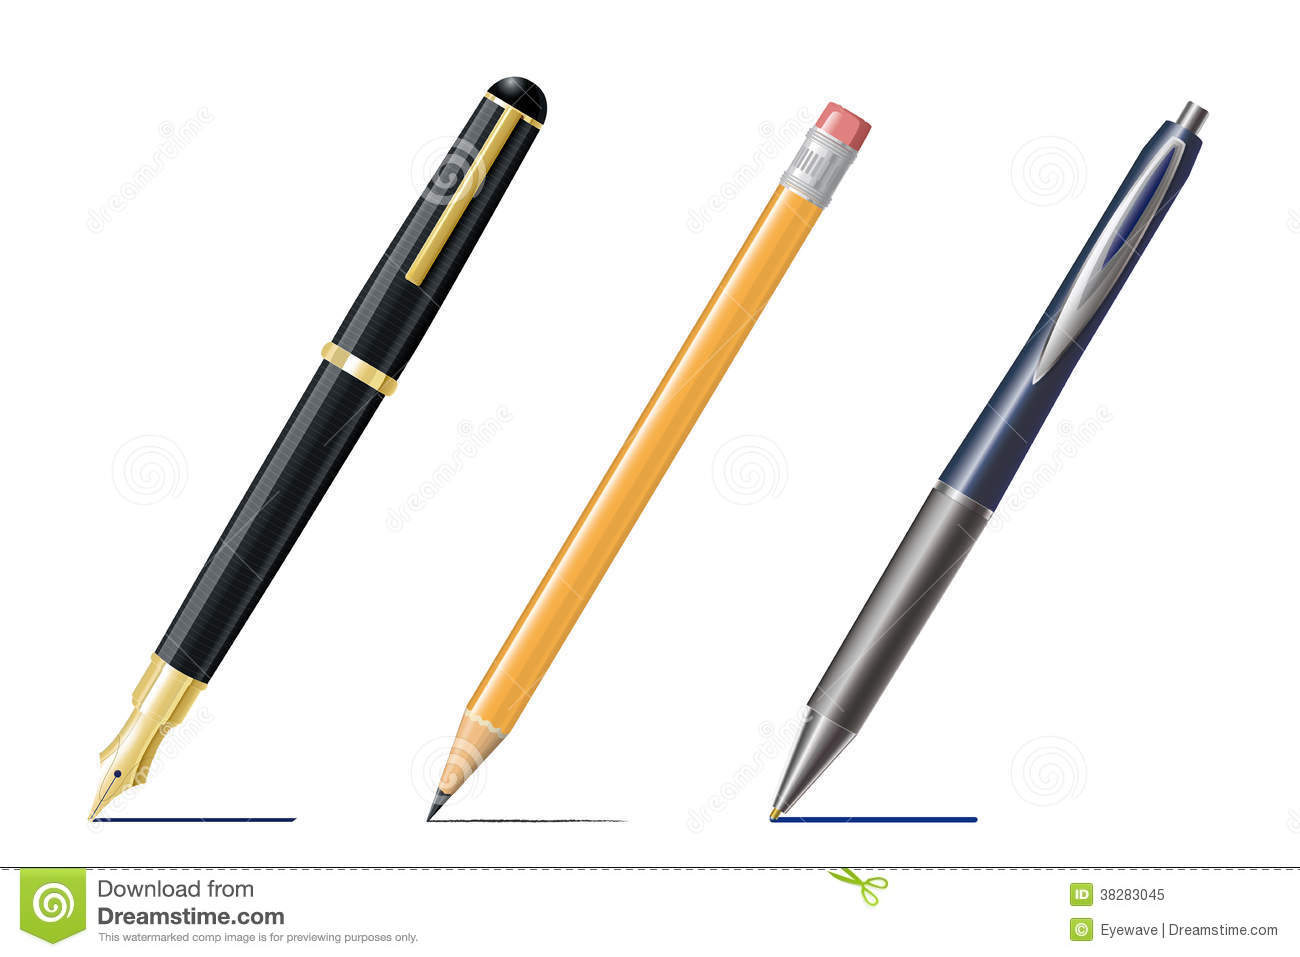 Drawing Lines With Pencil : Fountain pen pencil and ballpoint drawing lines royalty